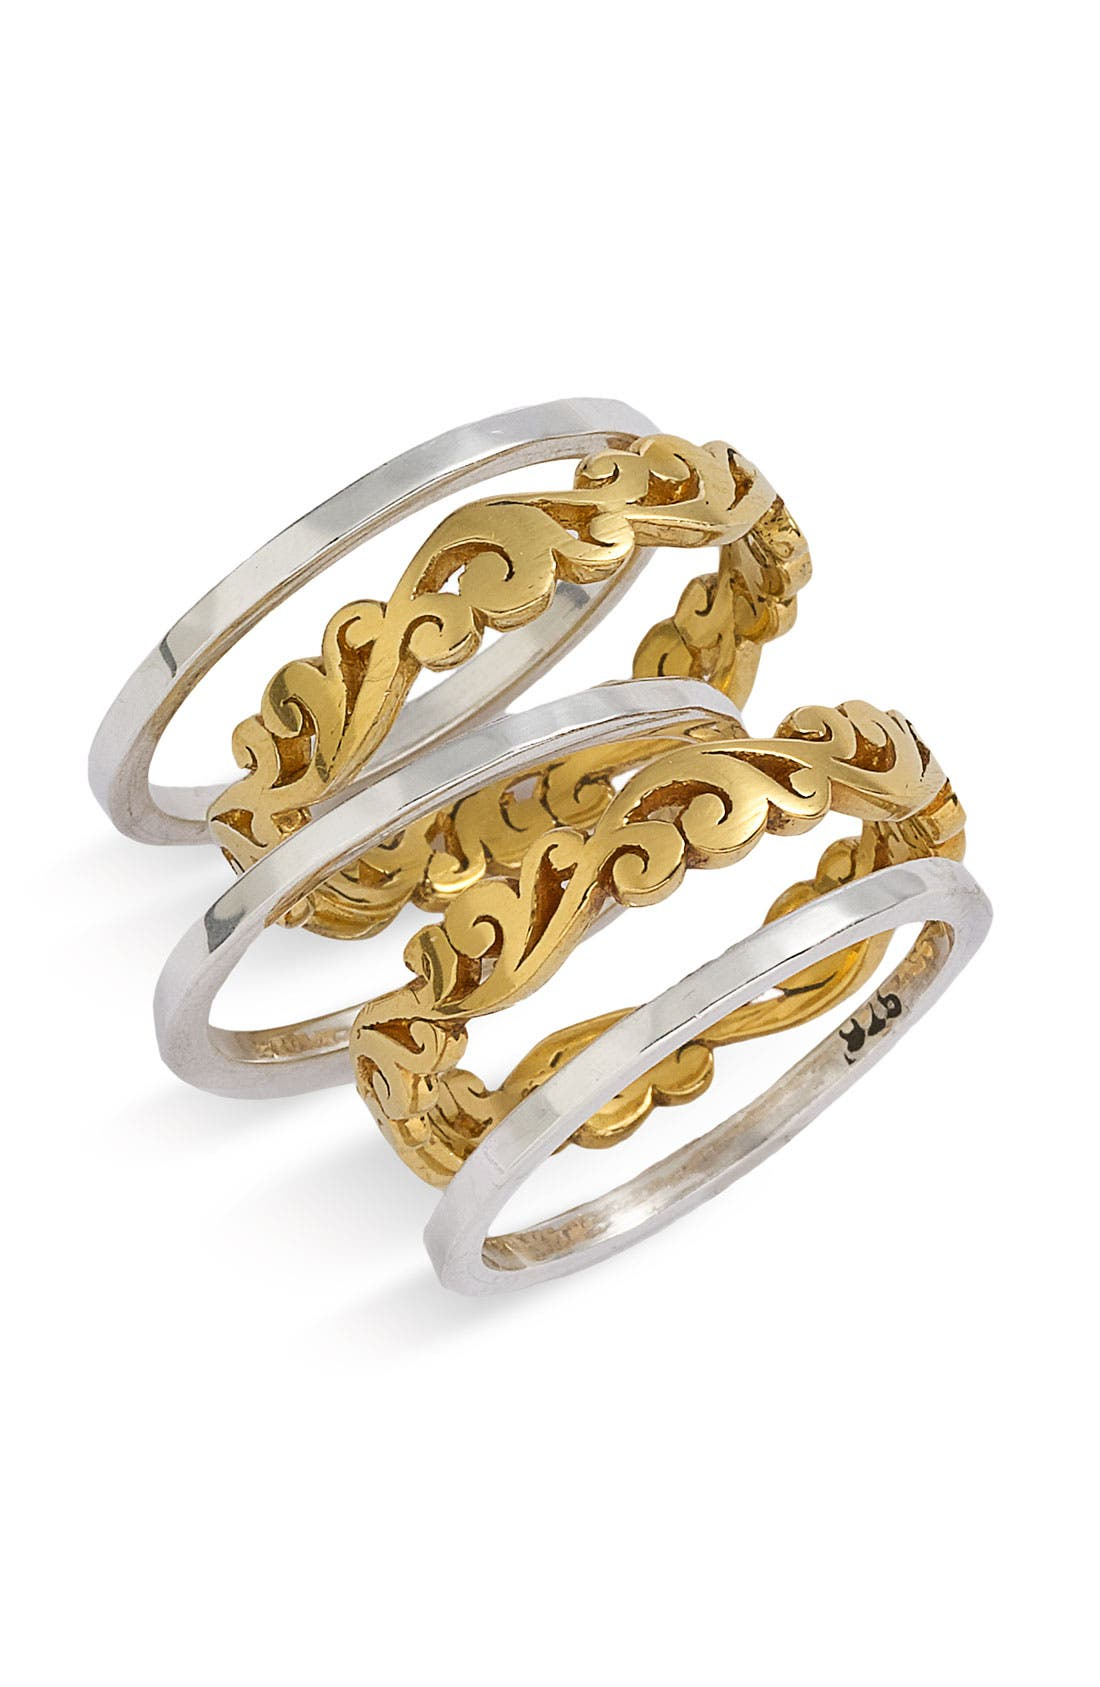 Alternate Image 1 Selected - Lois Hill 'Two Tone Organic Geo' Stack Rings (Set of 5) (Nordstrom Exclusive)